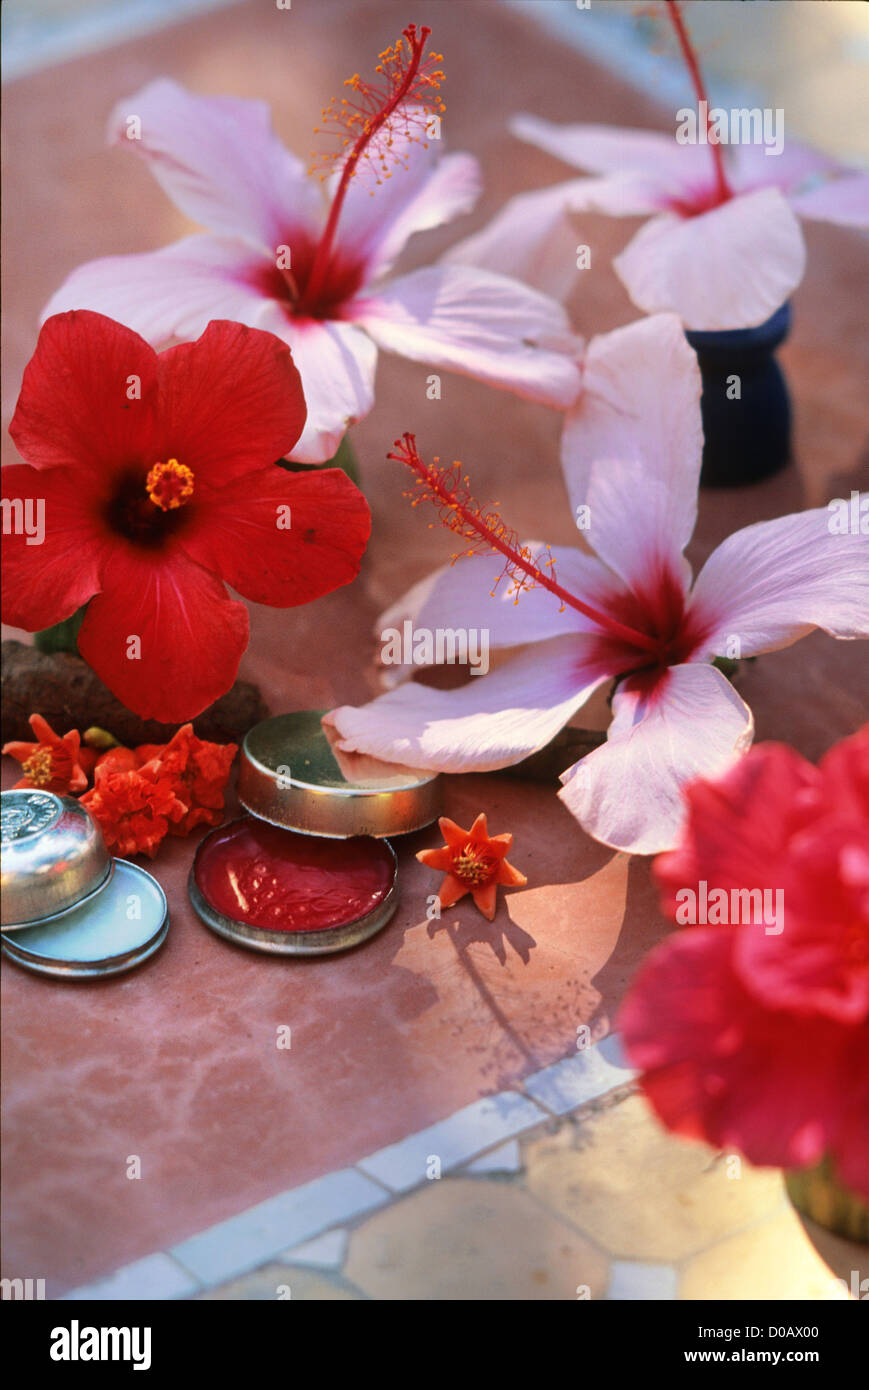 Hibiscus flowers used in north african cosmetics notably the creams hibiscus flowers used in north african cosmetics notably the creams and lip care traditional body care marrakech morocco africa izmirmasajfo